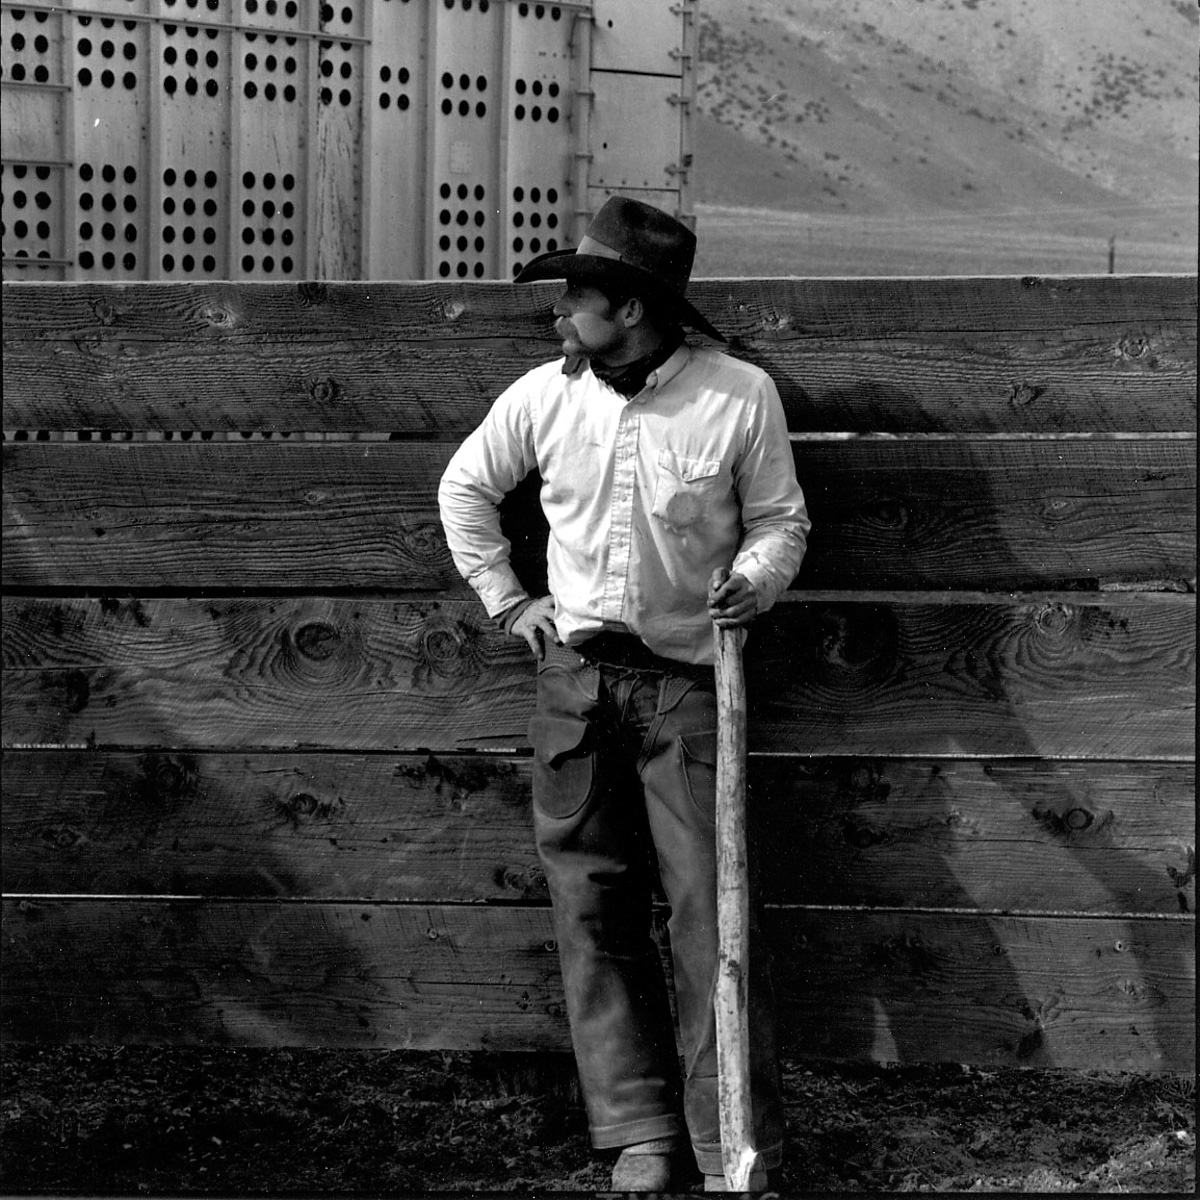 Mike-McLaughlin, Fish Creek Ranch, Nevada, 1990